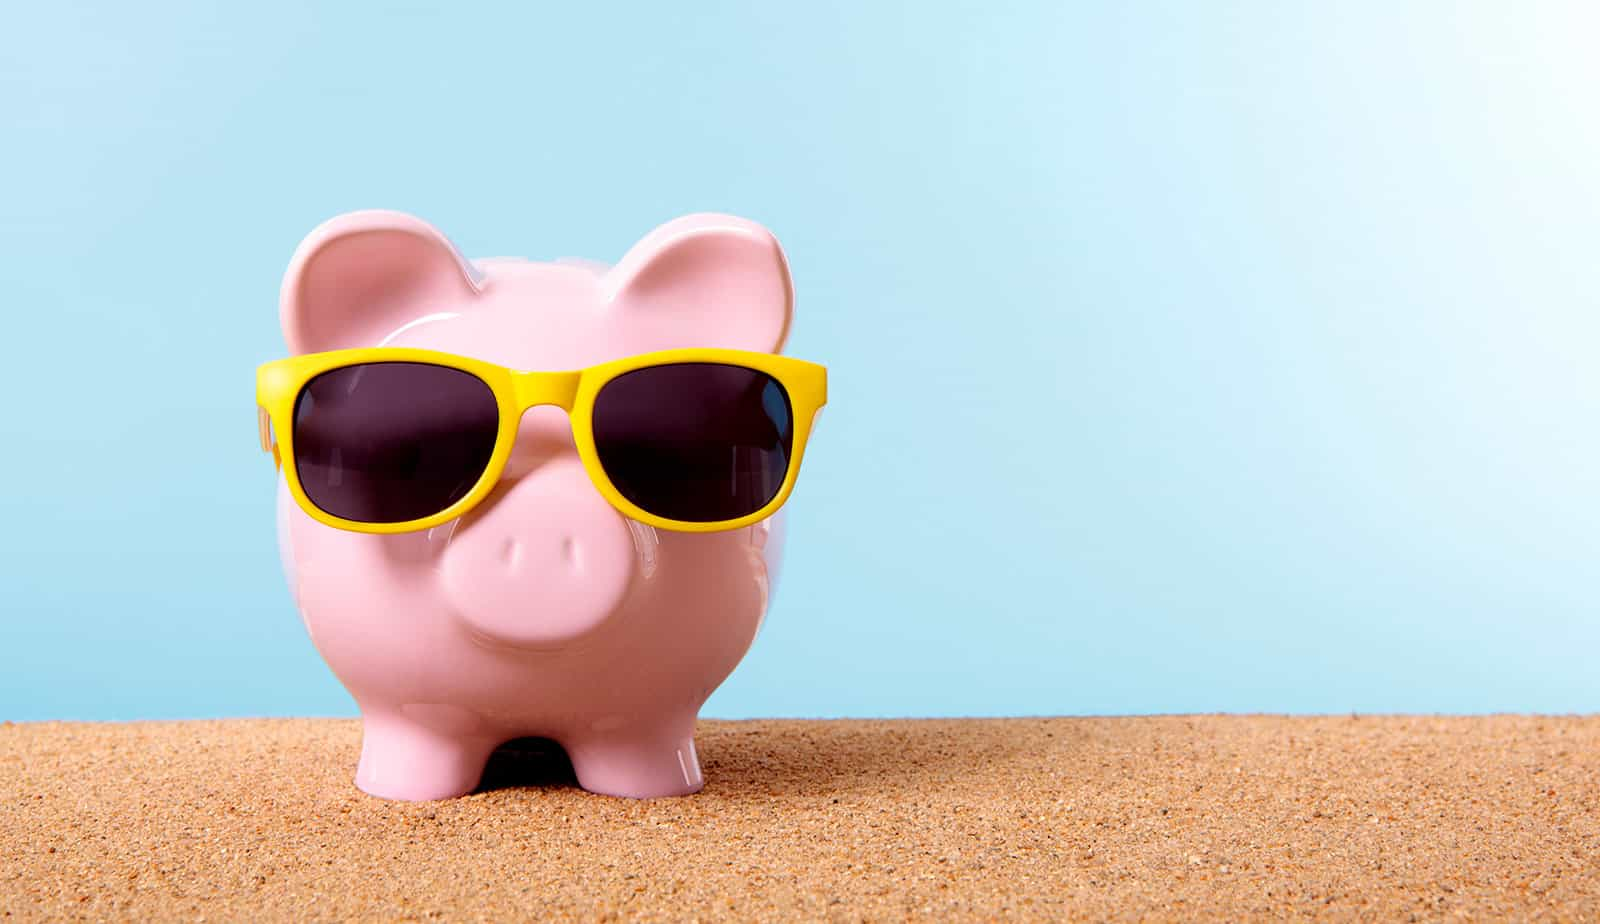 Our Top Money-Saving Travel Tips